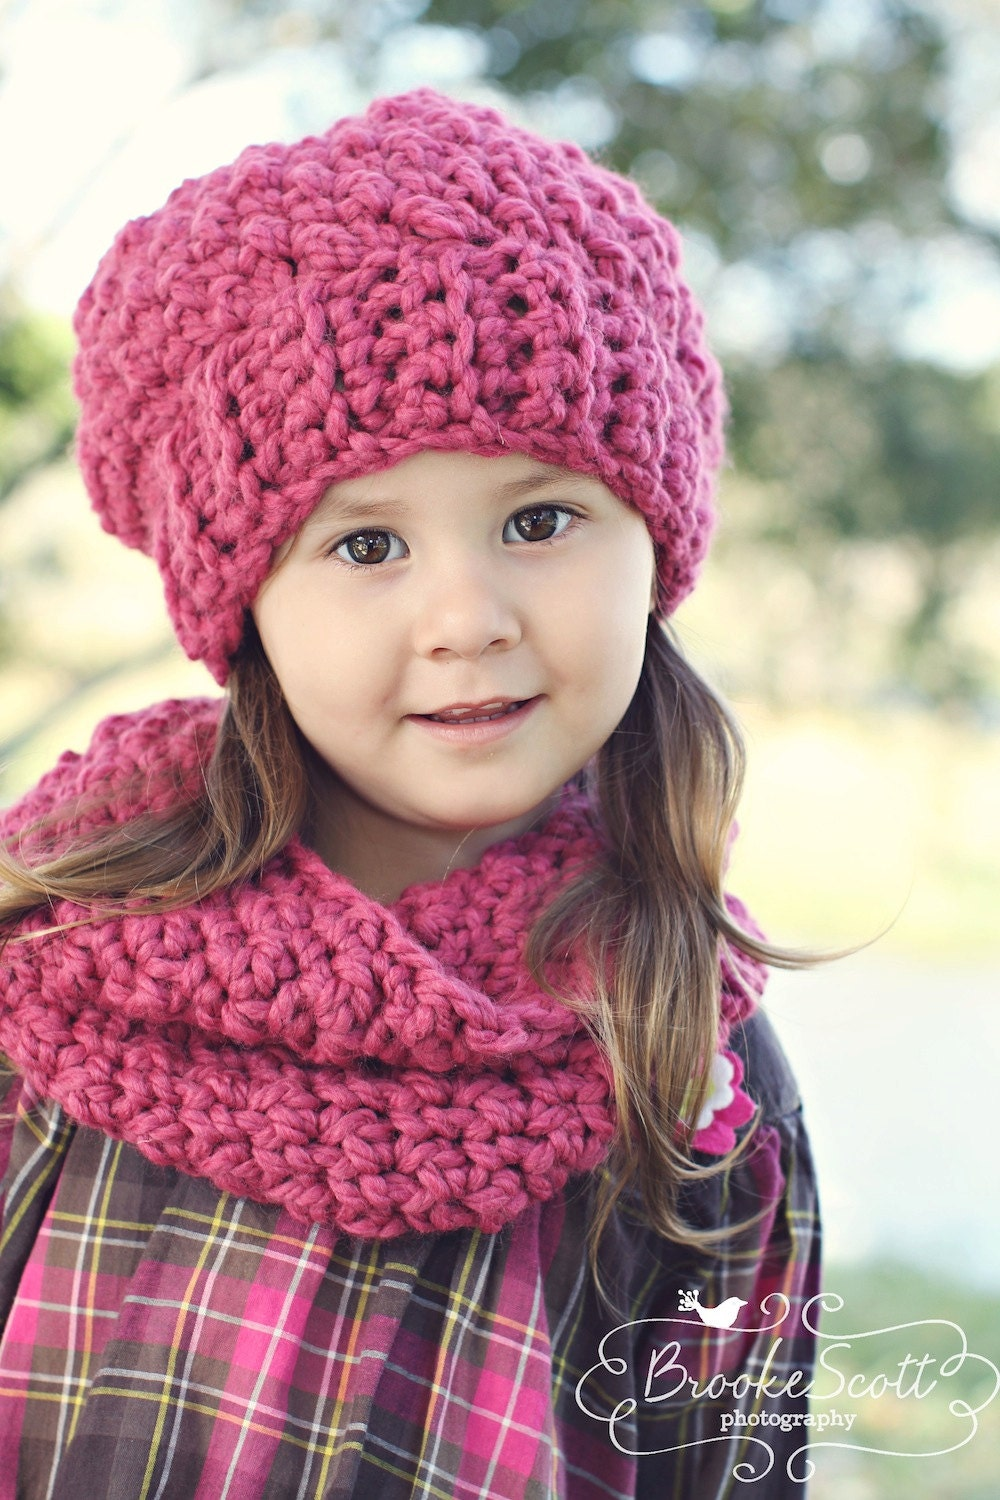 Crochet Patterns For Scarf And Hat : Patterns PDF Crochet Hat Scarf Newborn Infant Toddler Girl ...